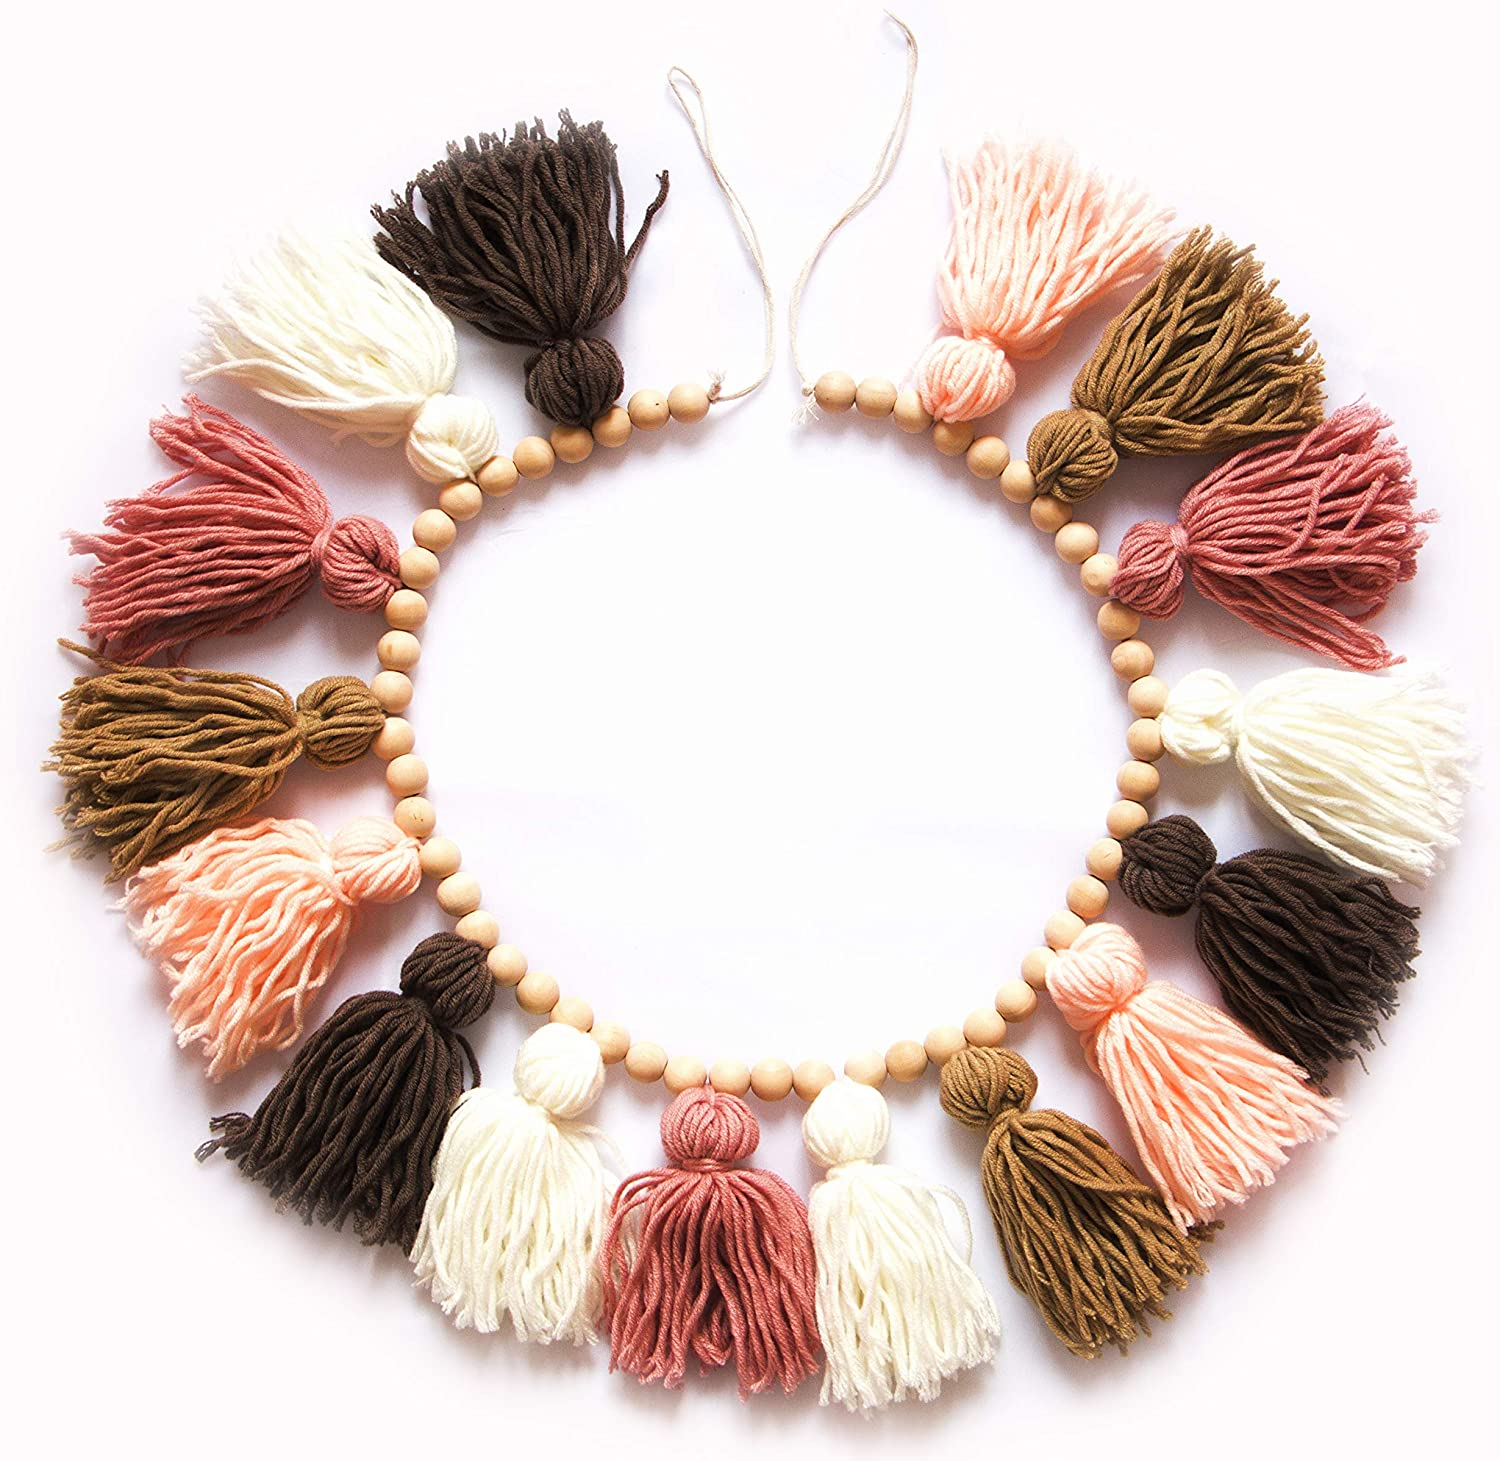 Decocove Tassel Garland - Boho Tassel Garland with Wood Beads - Wall Decor for Dorm, Girls Room and Nursery Room (43 inch) - Blush and Terra Cotta